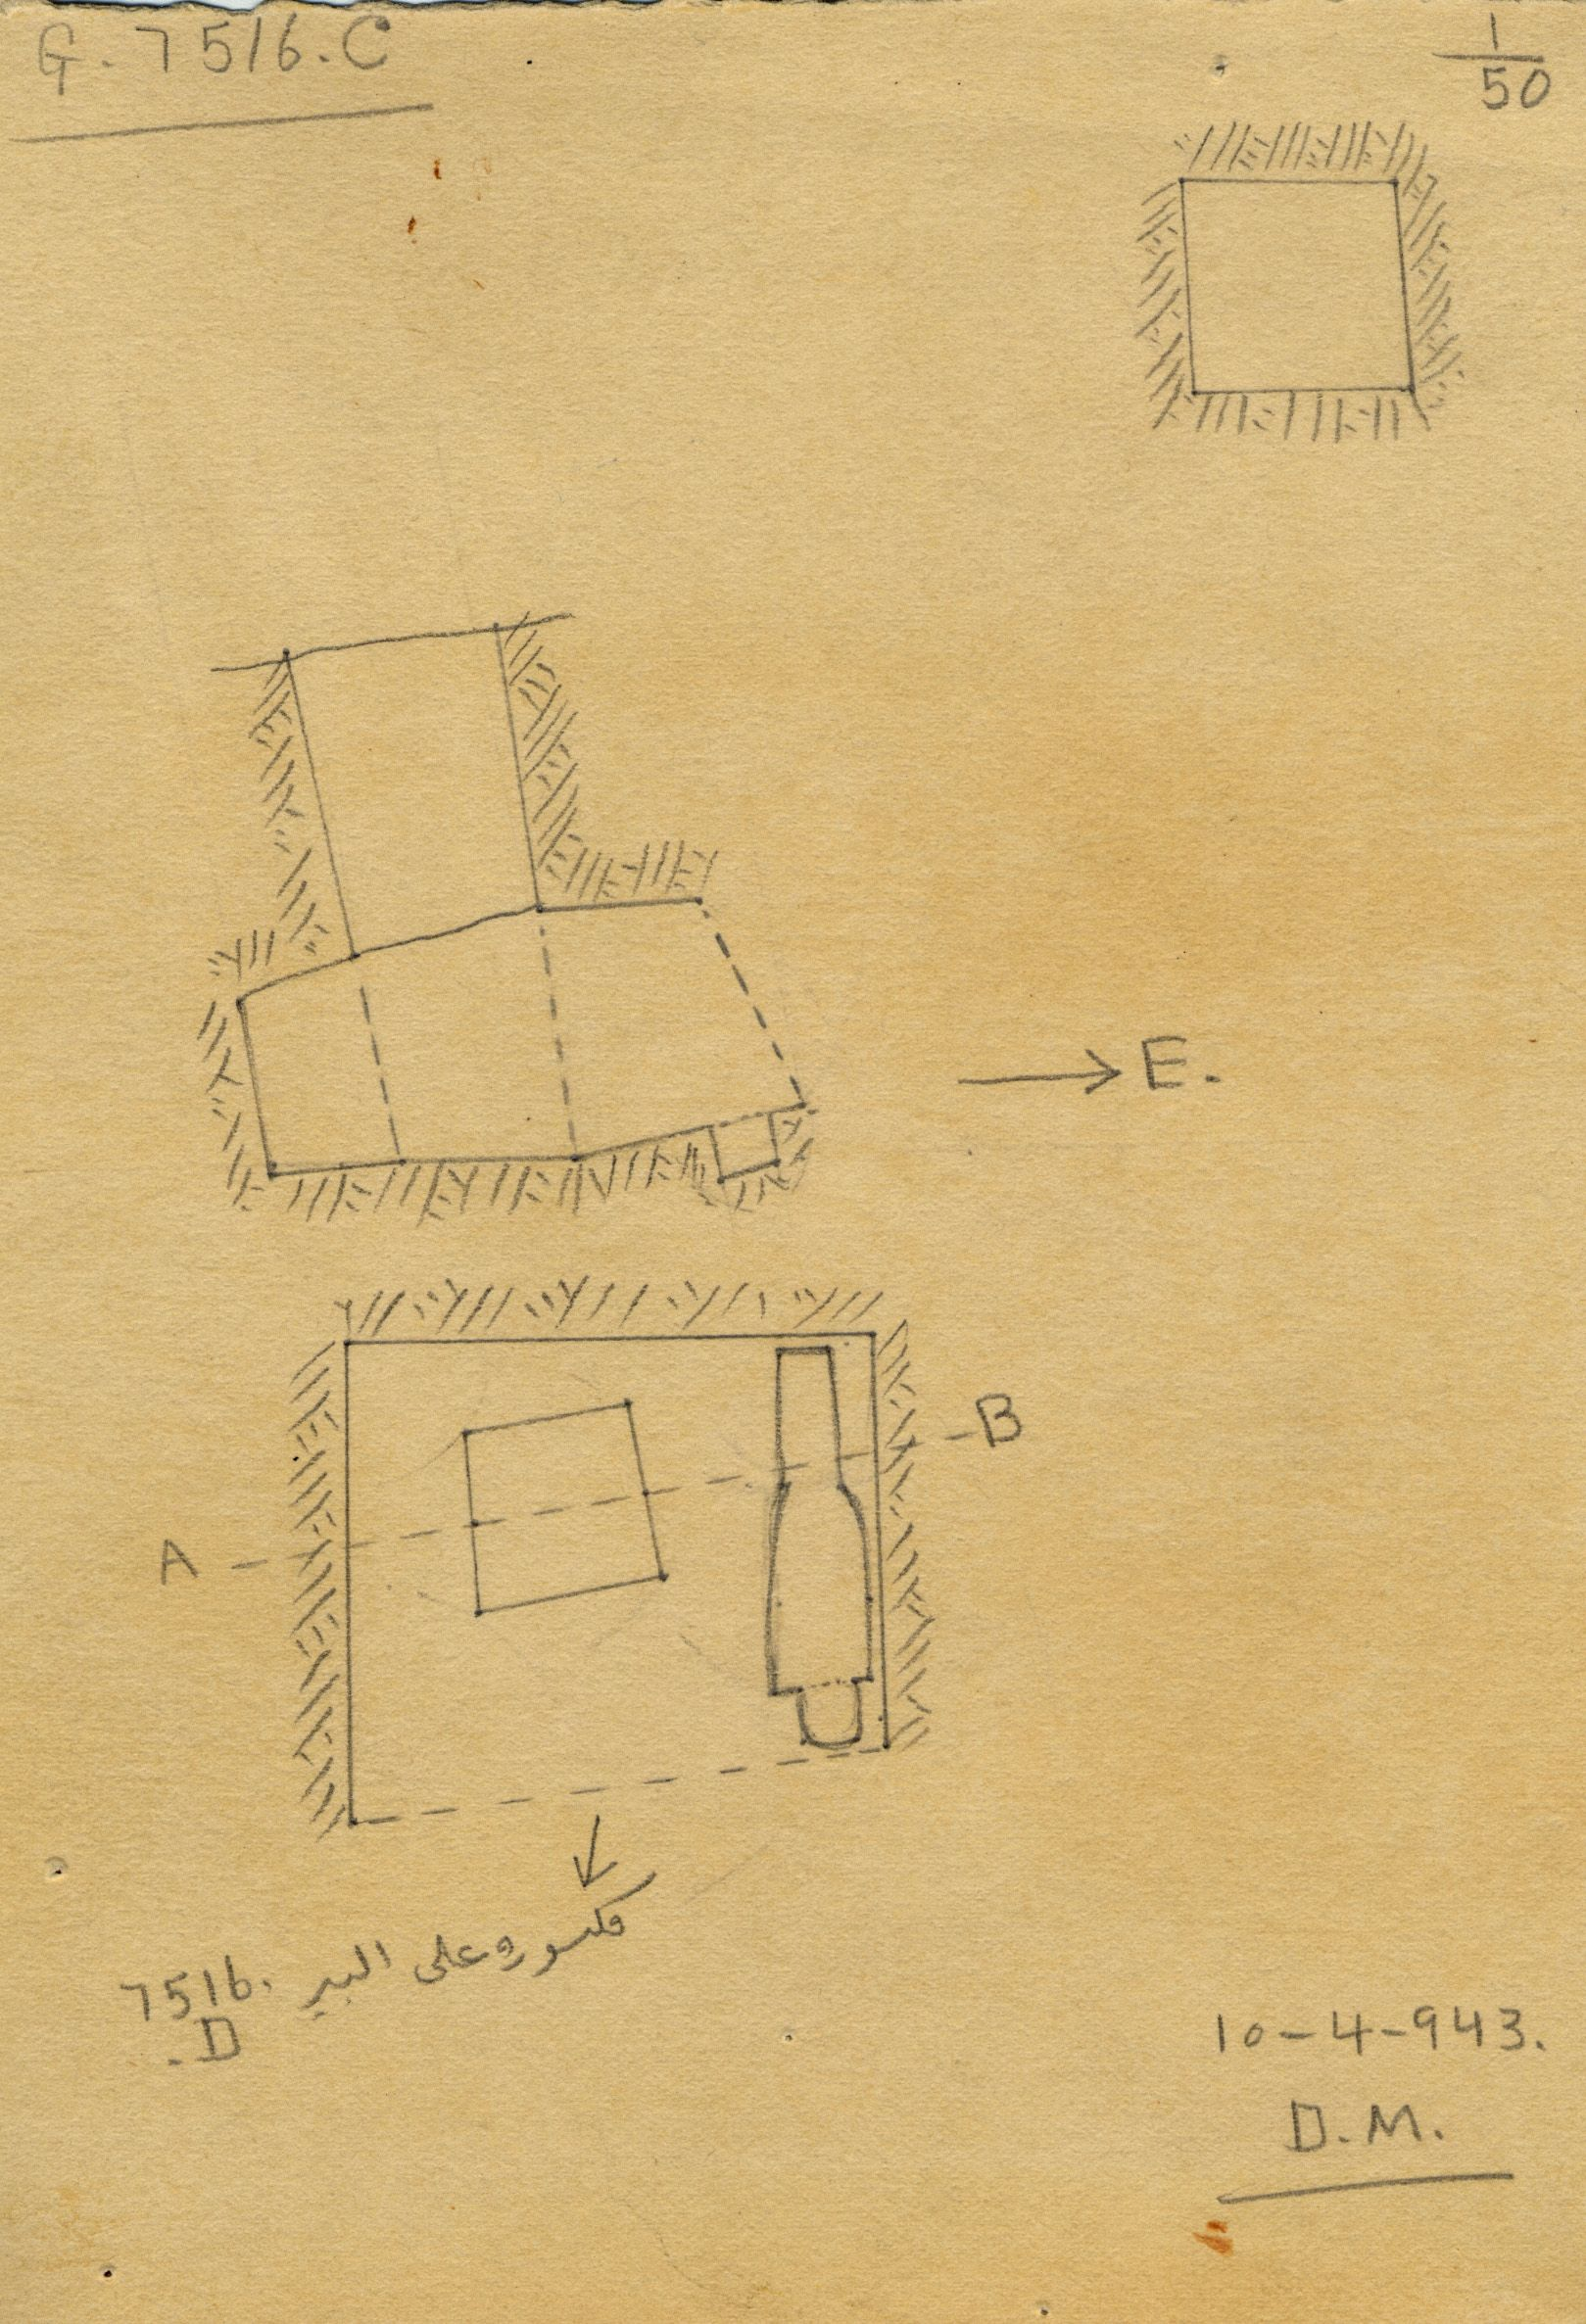 Maps and plans: G 7516, Shaft C